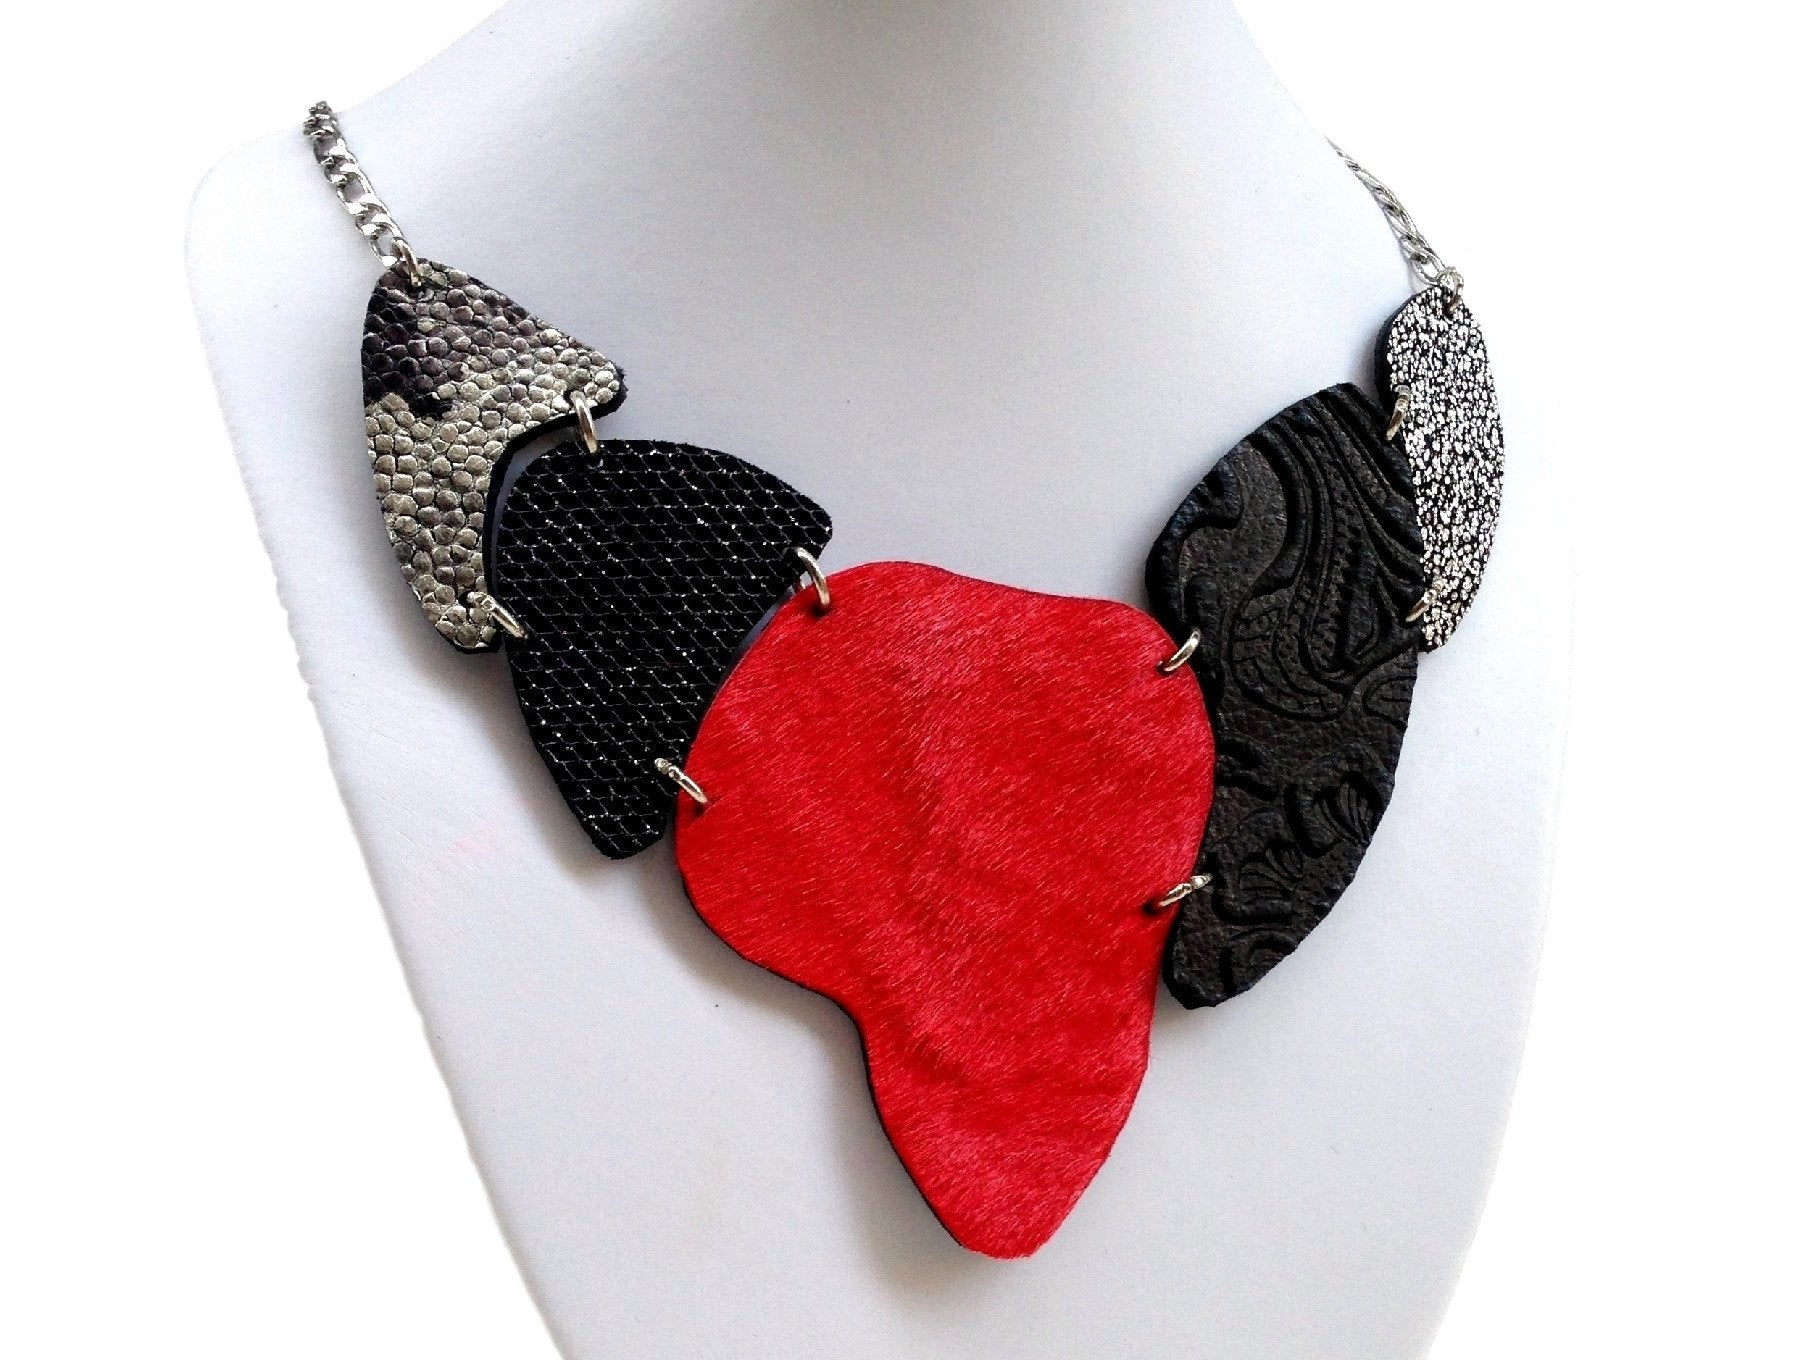 Handmade leather necklace ARMADILLO double face-2in1-reversible (black/red/cavallino) (2-in-1)